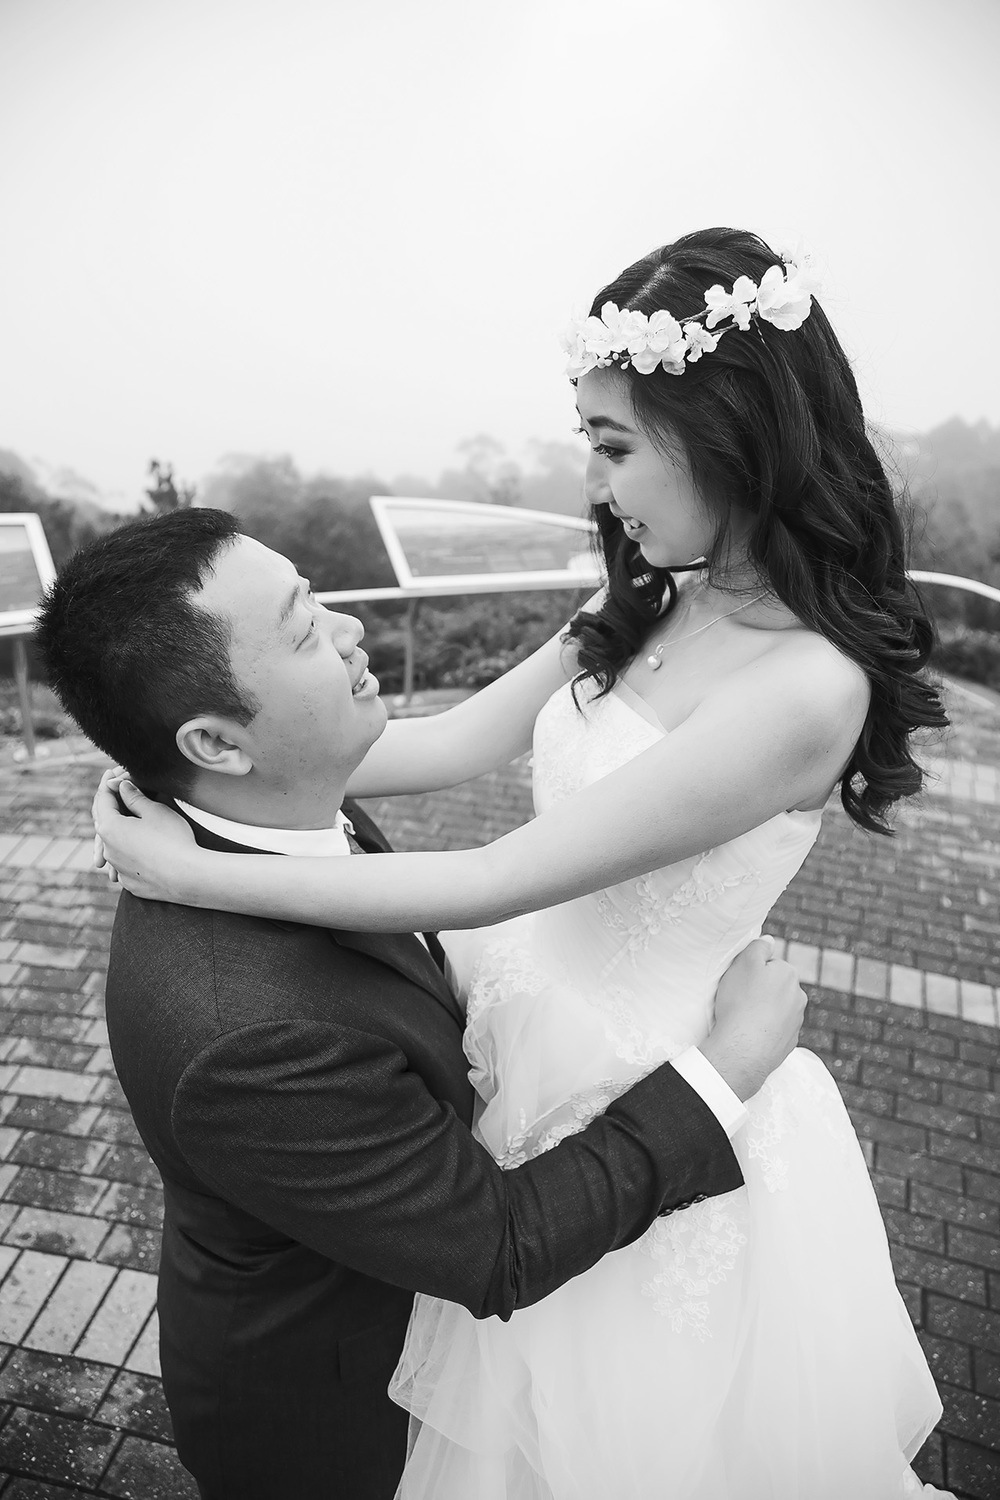 Artistic Black and White Wedding Photo 2